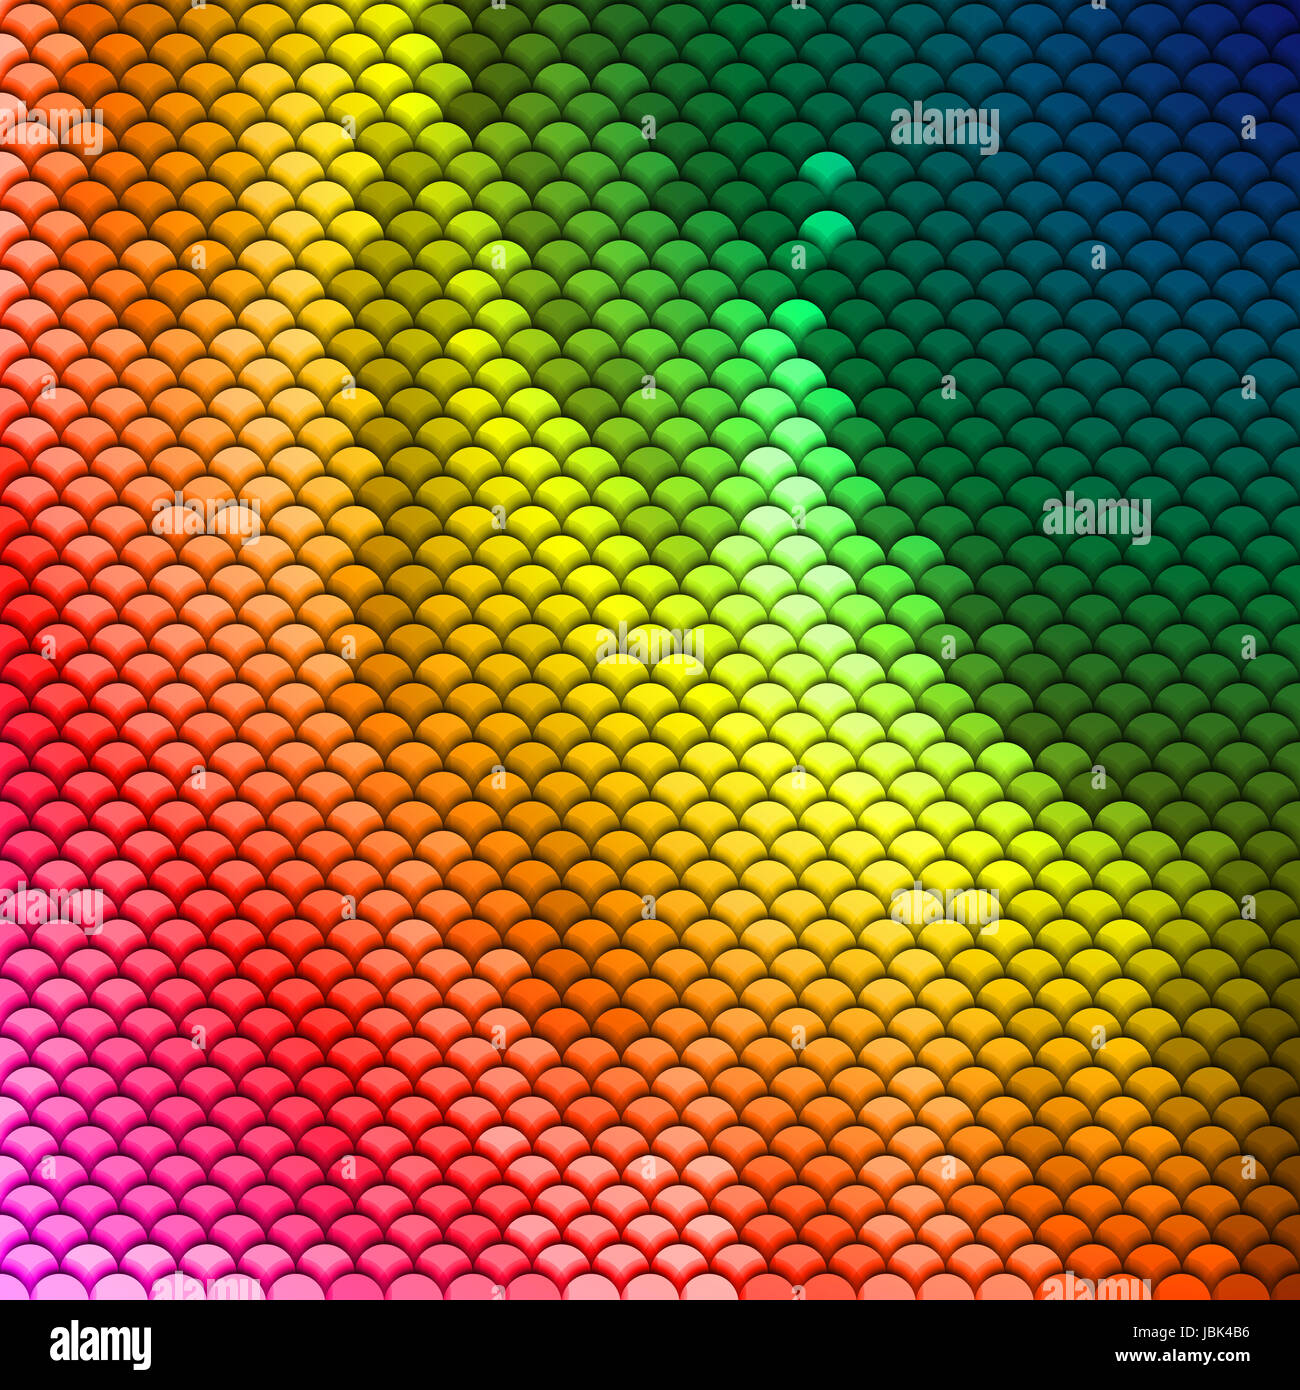 Abstract scales pattern in spectrum colors. Textured background - Stock Image